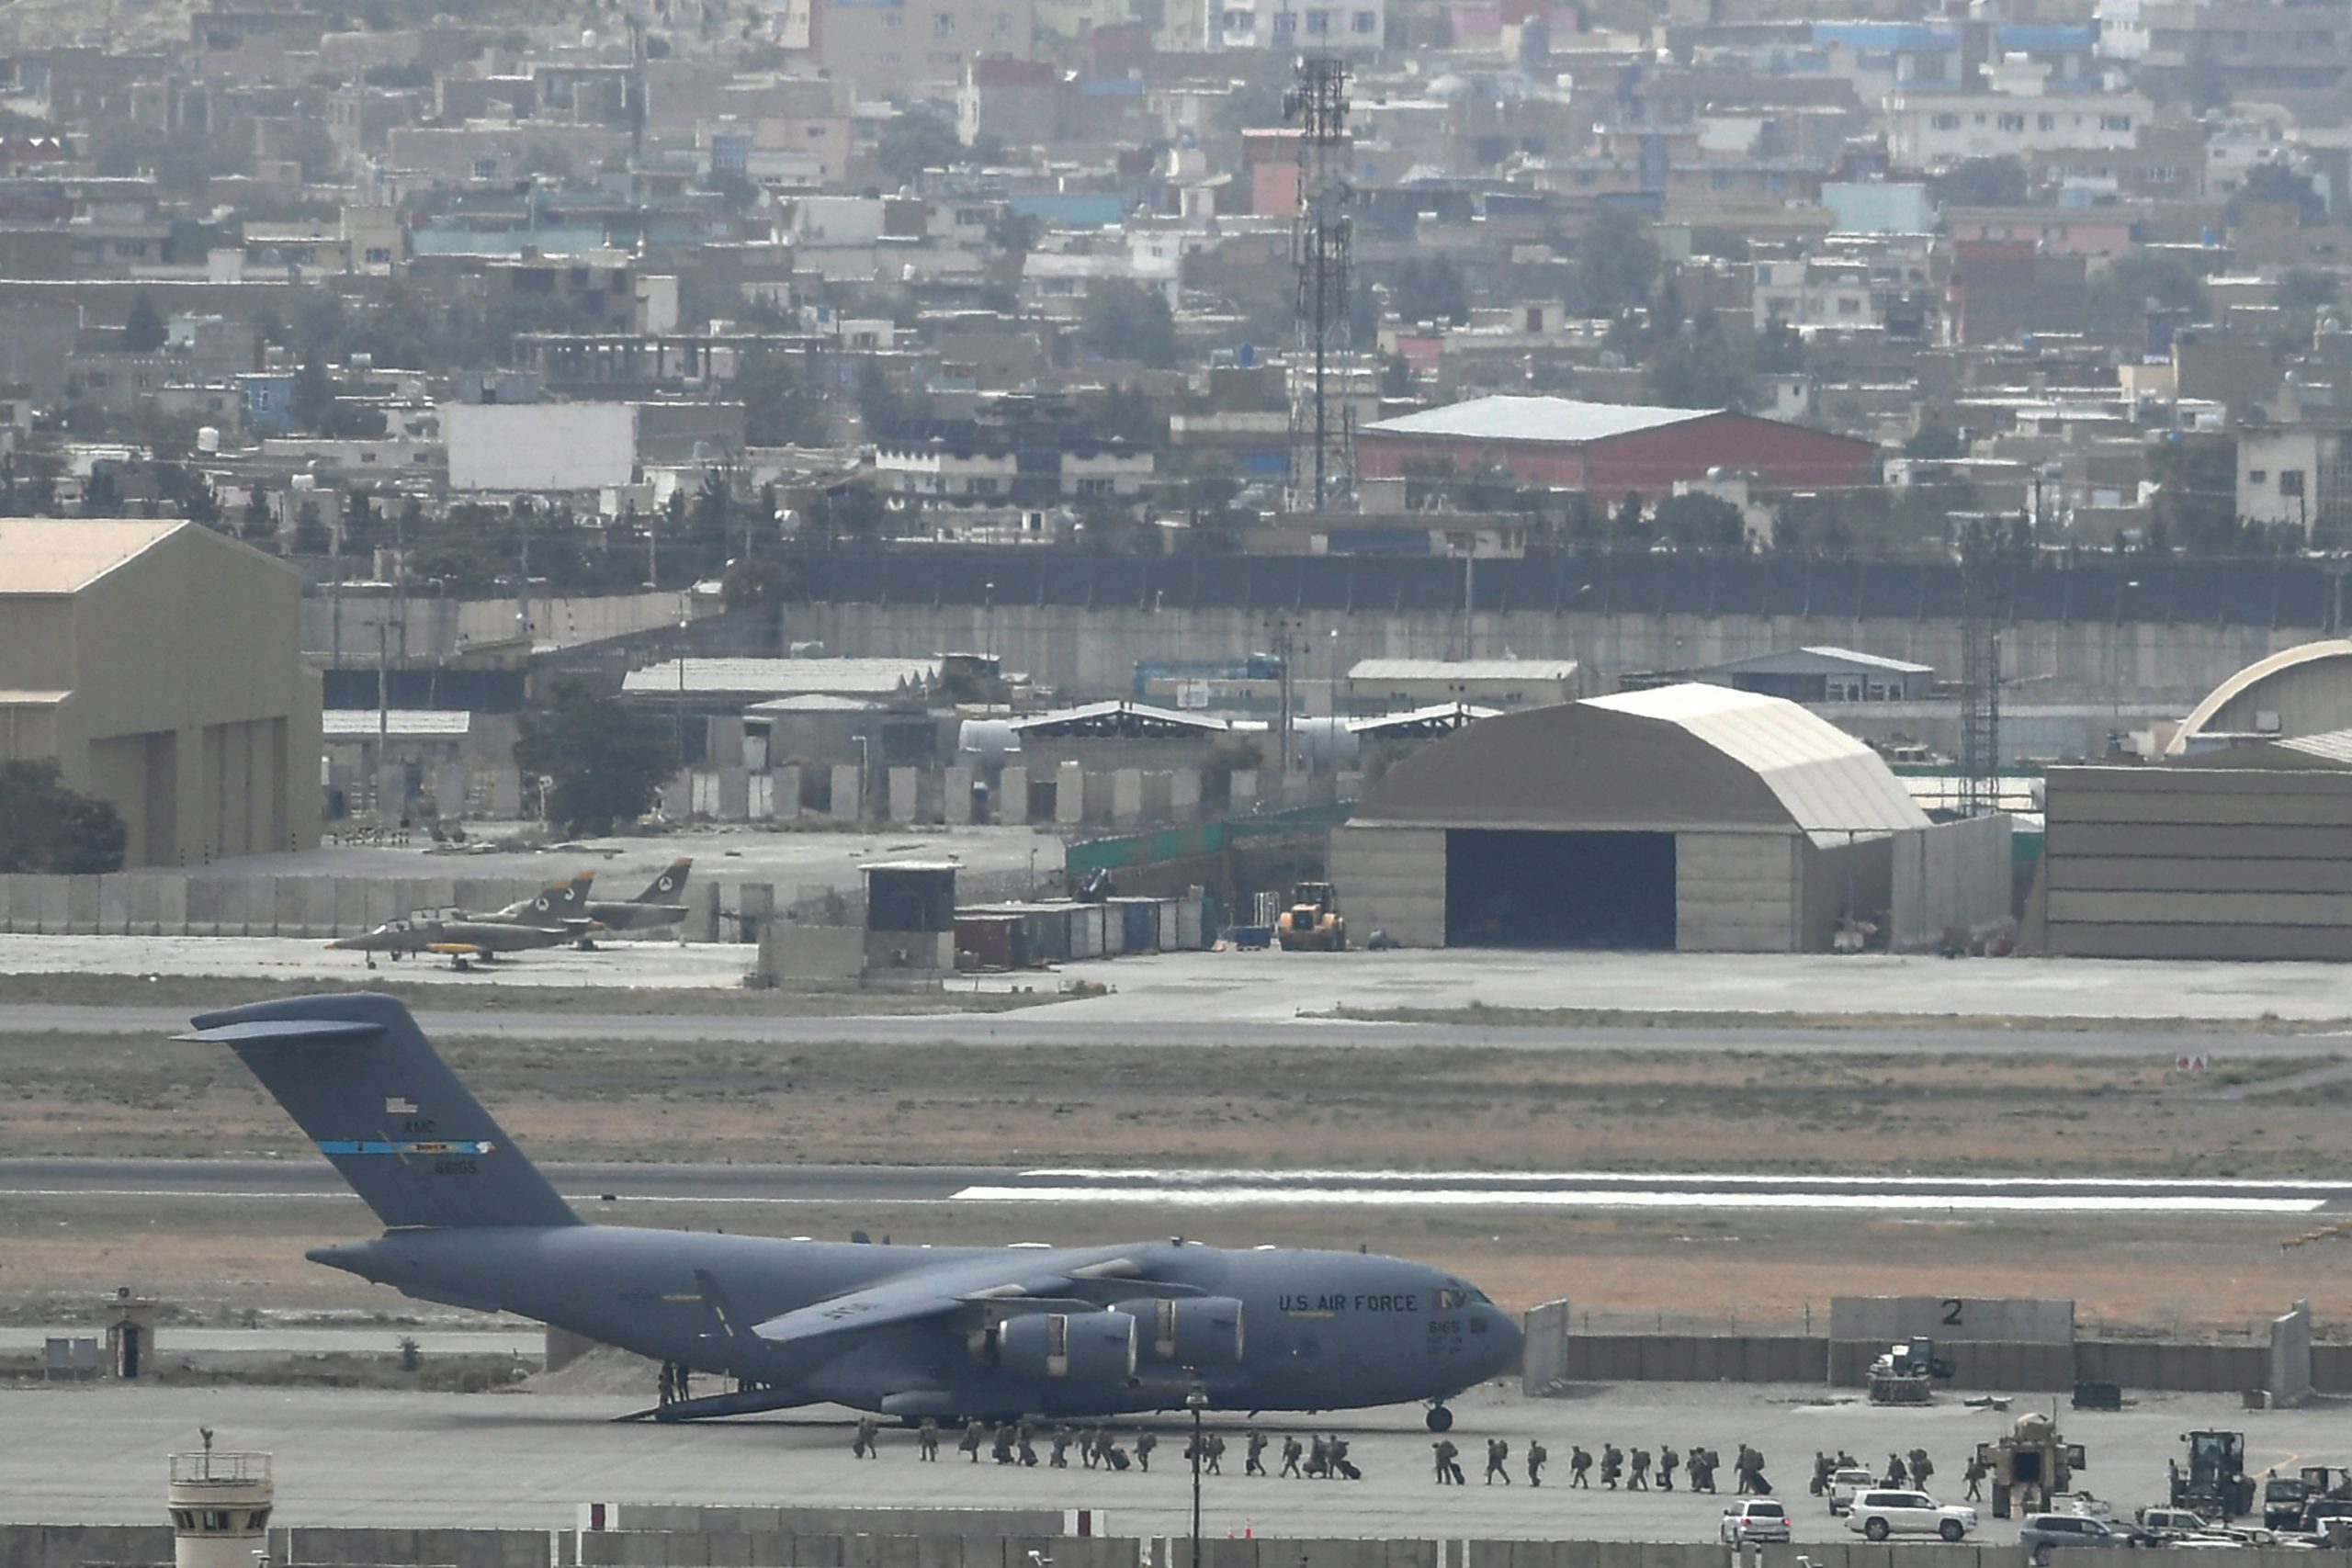 US soldiers arrive board an US Air Force aircraft at the airport in Kabul on August 30, 2021. - Rockets were fired at Kabul's airport on August 30 where US troops were racing to complete their withdrawal from Afghanistan and evacuate allies under the threat of Islamic State group attacks. (Photo by Aamir QURESHI / AFP) (Photo by AAMIR QURESHI/AFP via Getty Images)